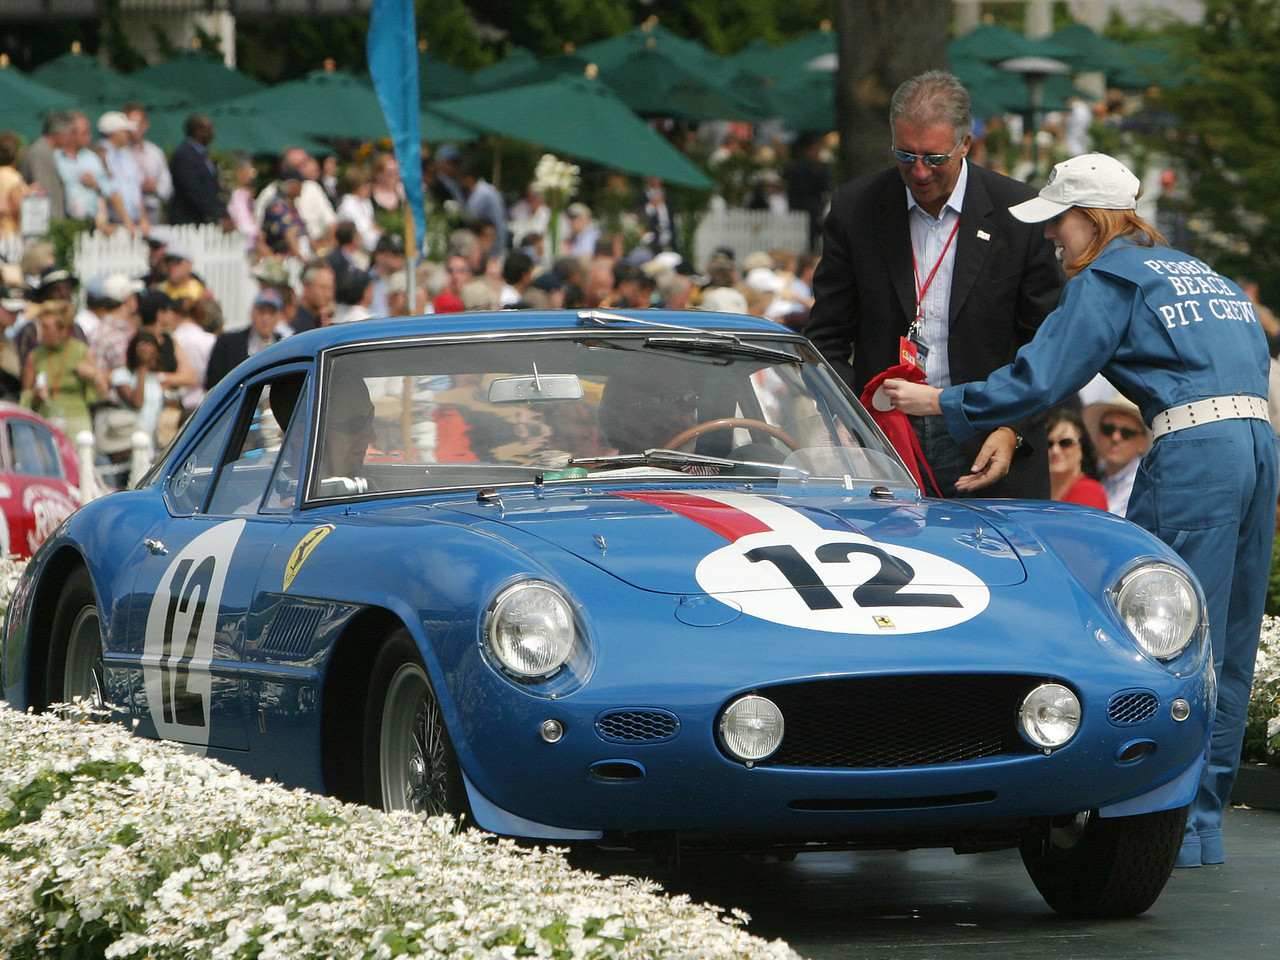 1961 Ferrari 250 GT Pininfarina Berlinetta Prototype.